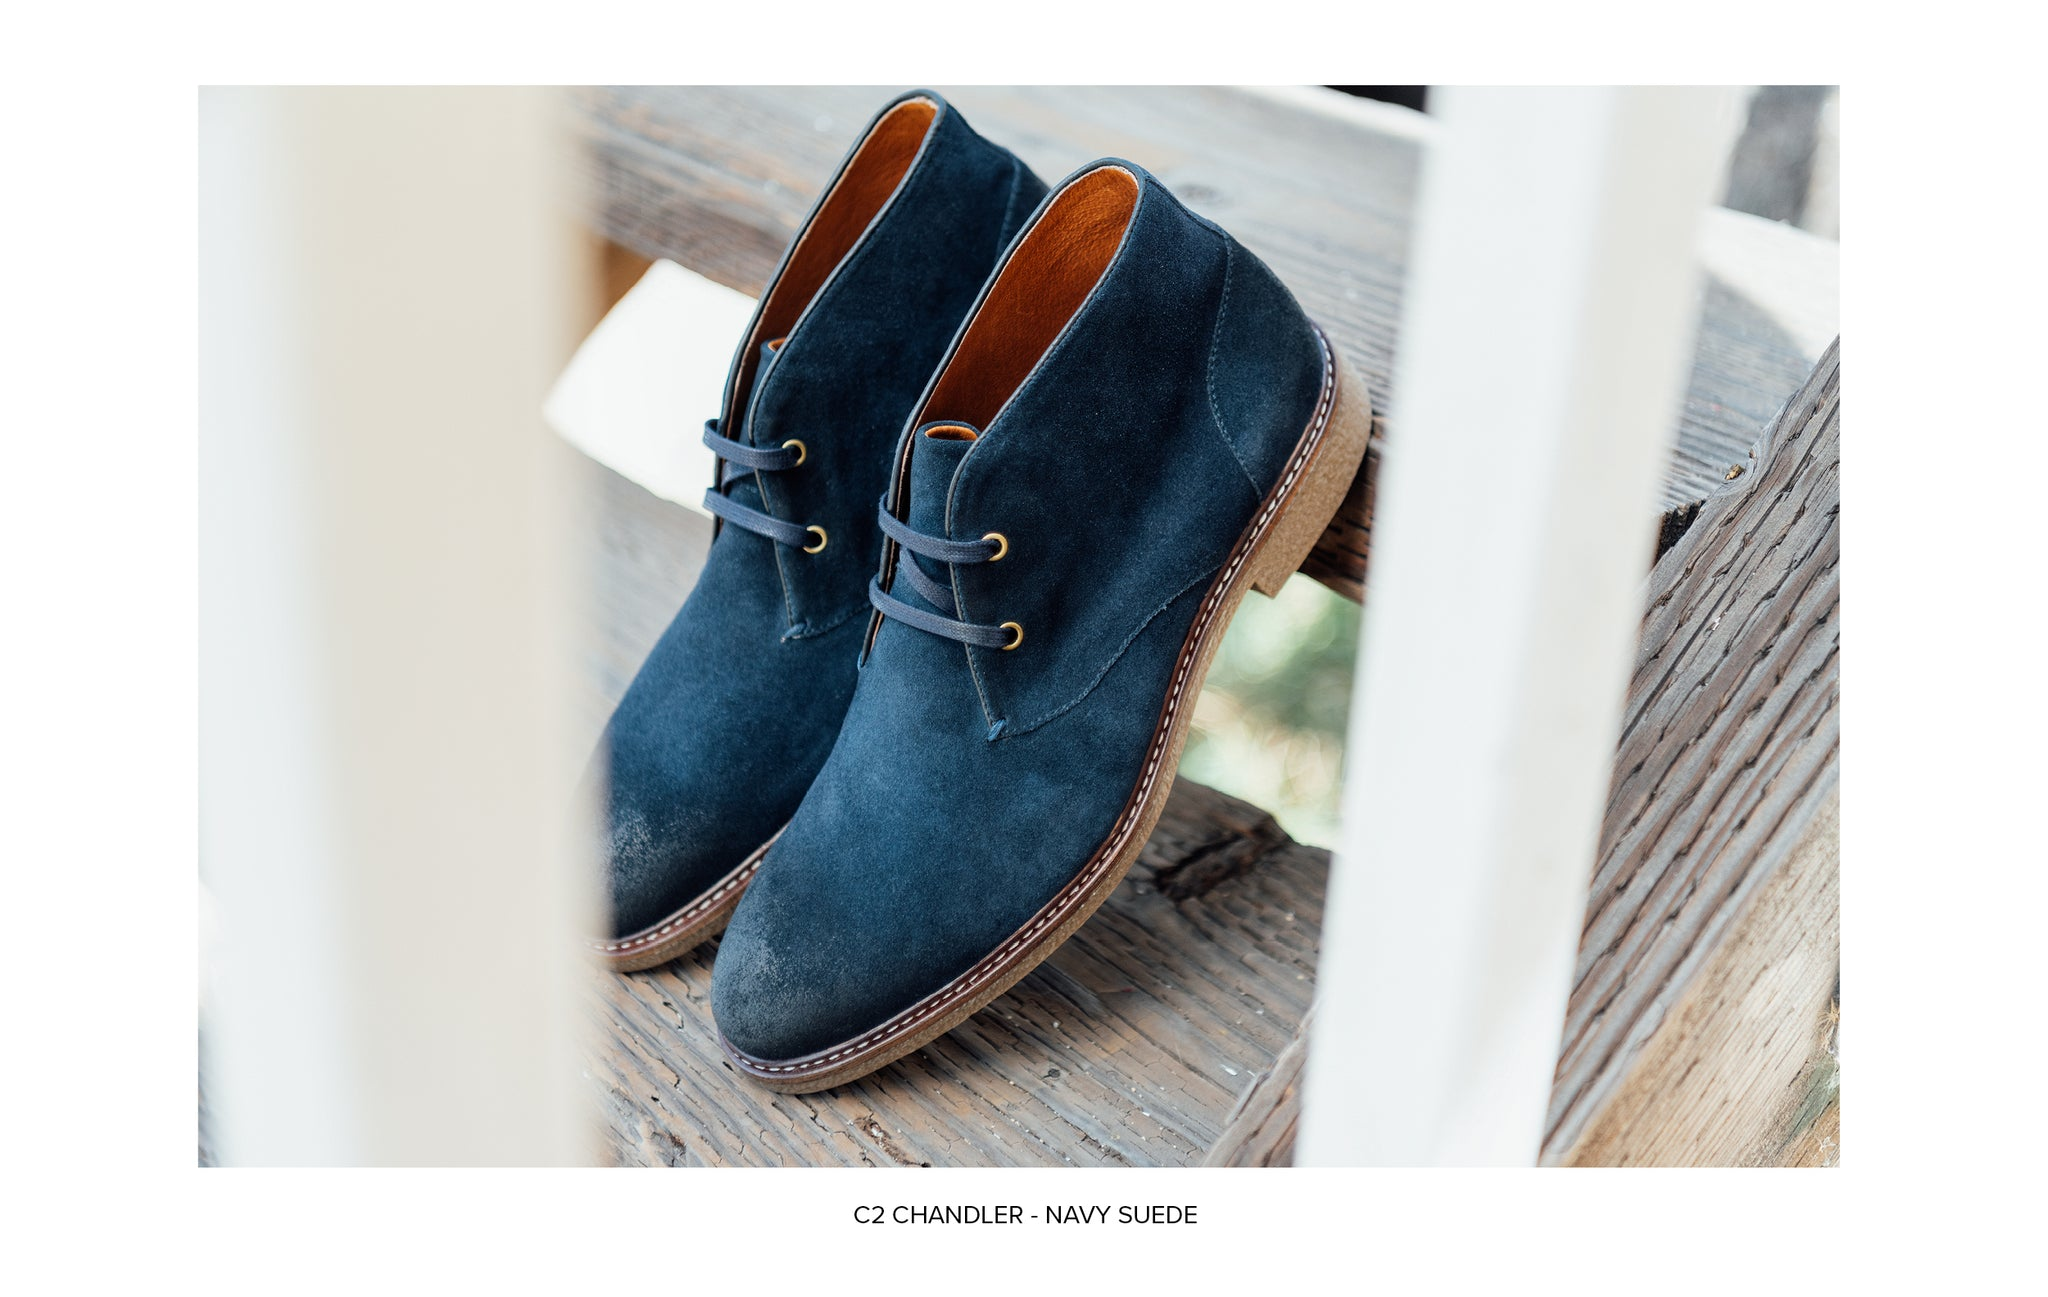 C2 Chukka Boot in Navy Suede by Blake McKay